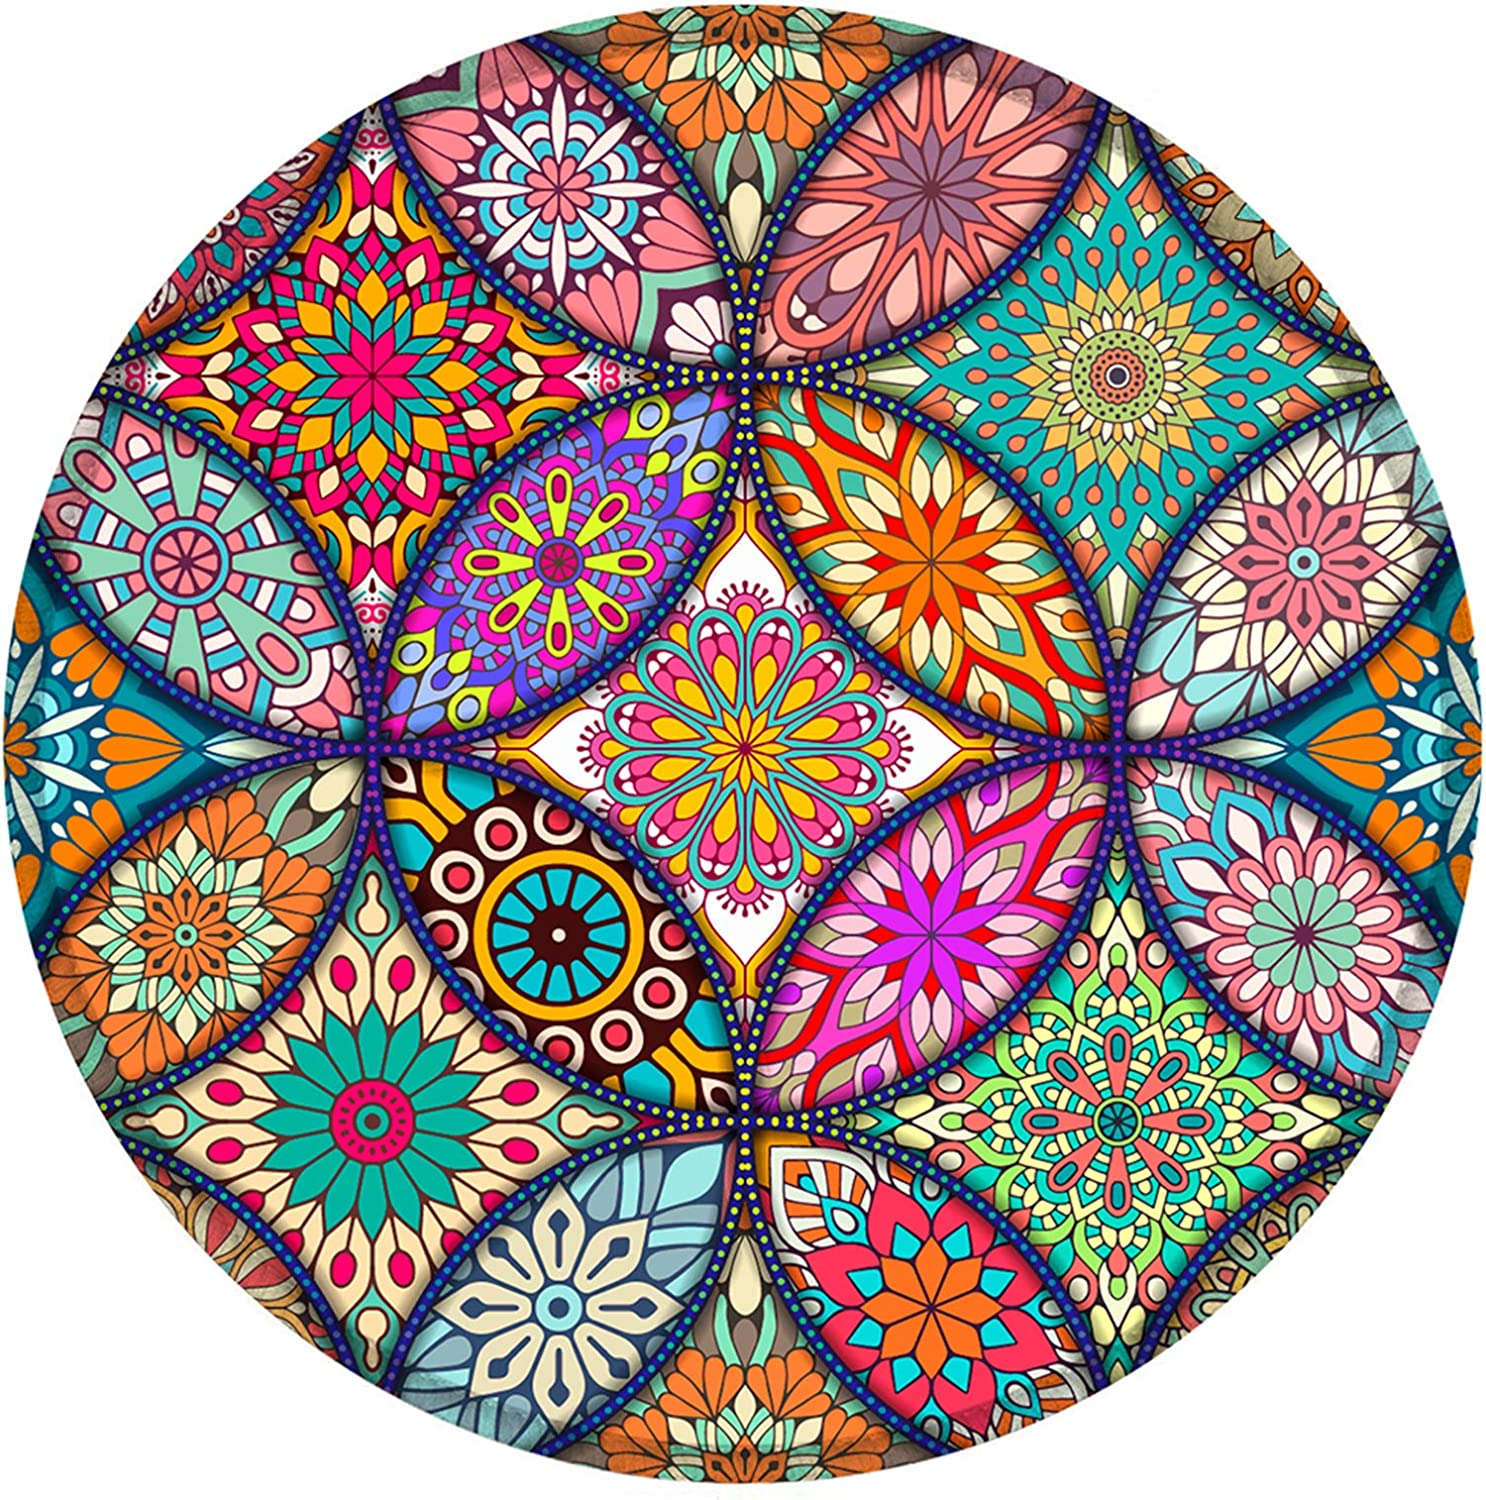 Nakapa Mouse Pad, Personalized Printed Mouse Mat, Non-Slip Rubber Base Mousepad for Laptop, Computer 7.9x7.9 inches (Colorful Mandala)